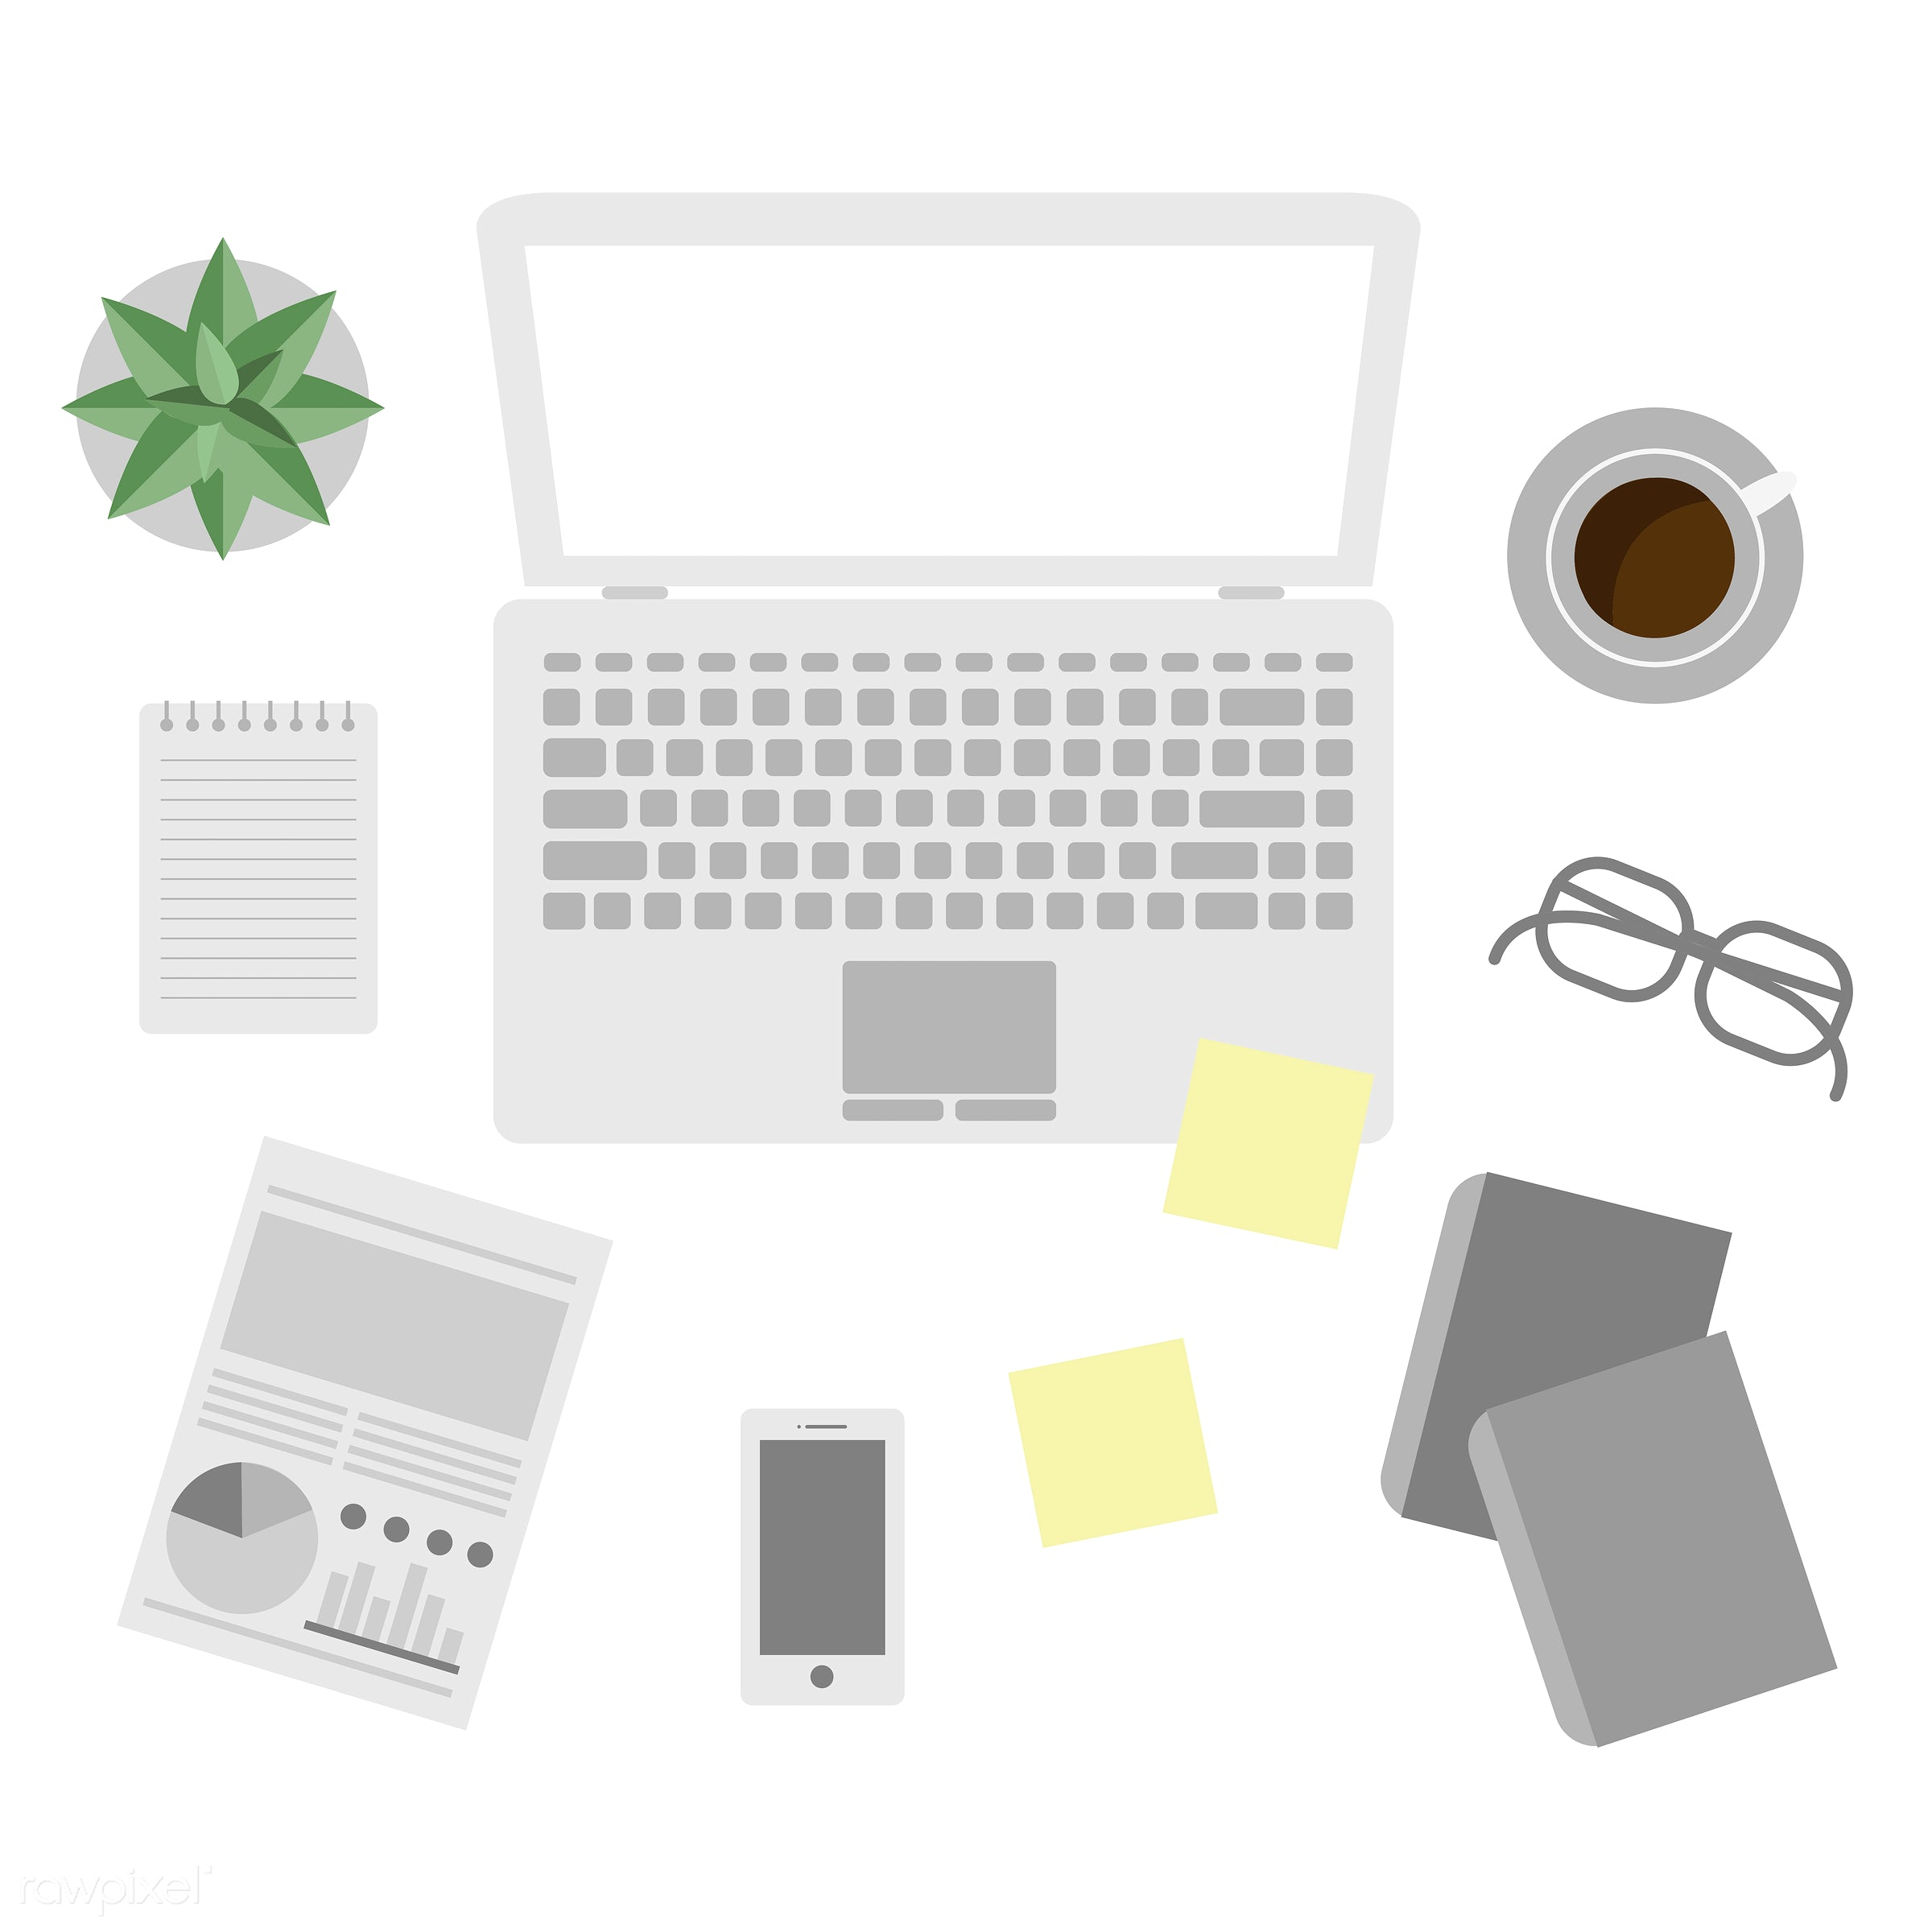 Office equipment vector - laptop, office, technology, document, flat lay, graphic, icon, illustration, notebook, office...